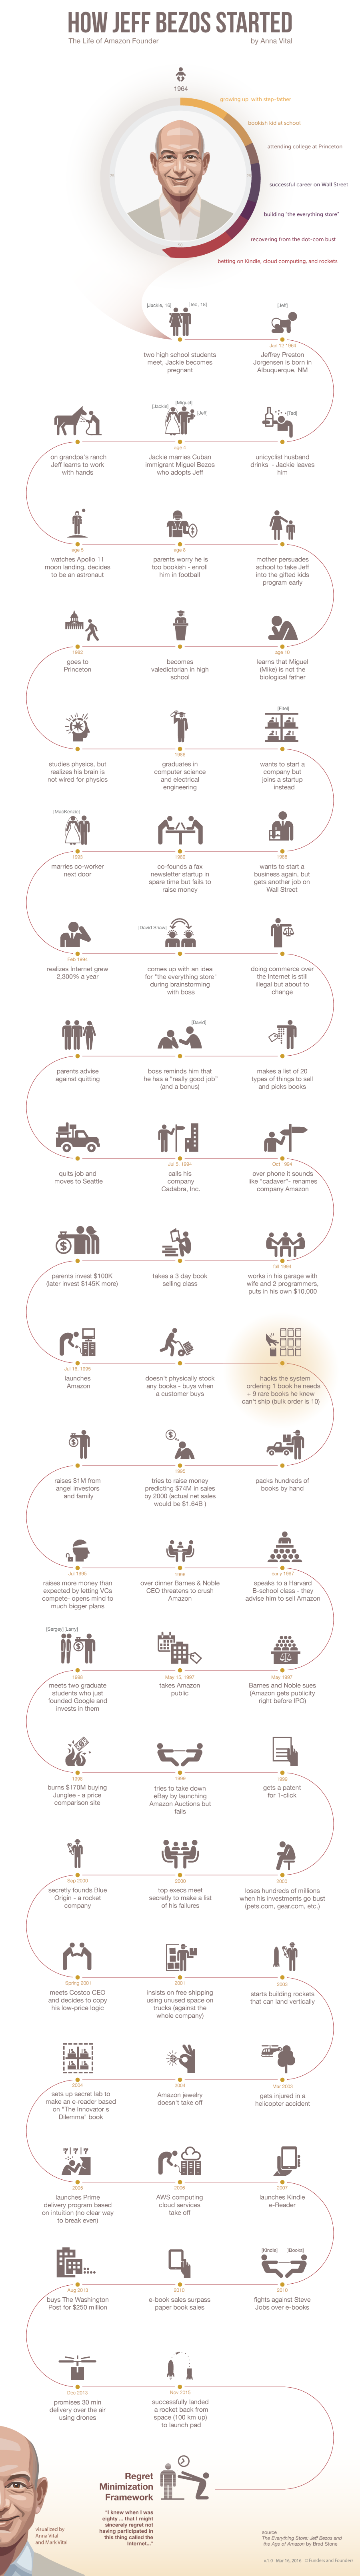 how Jeff Bezos started infographic